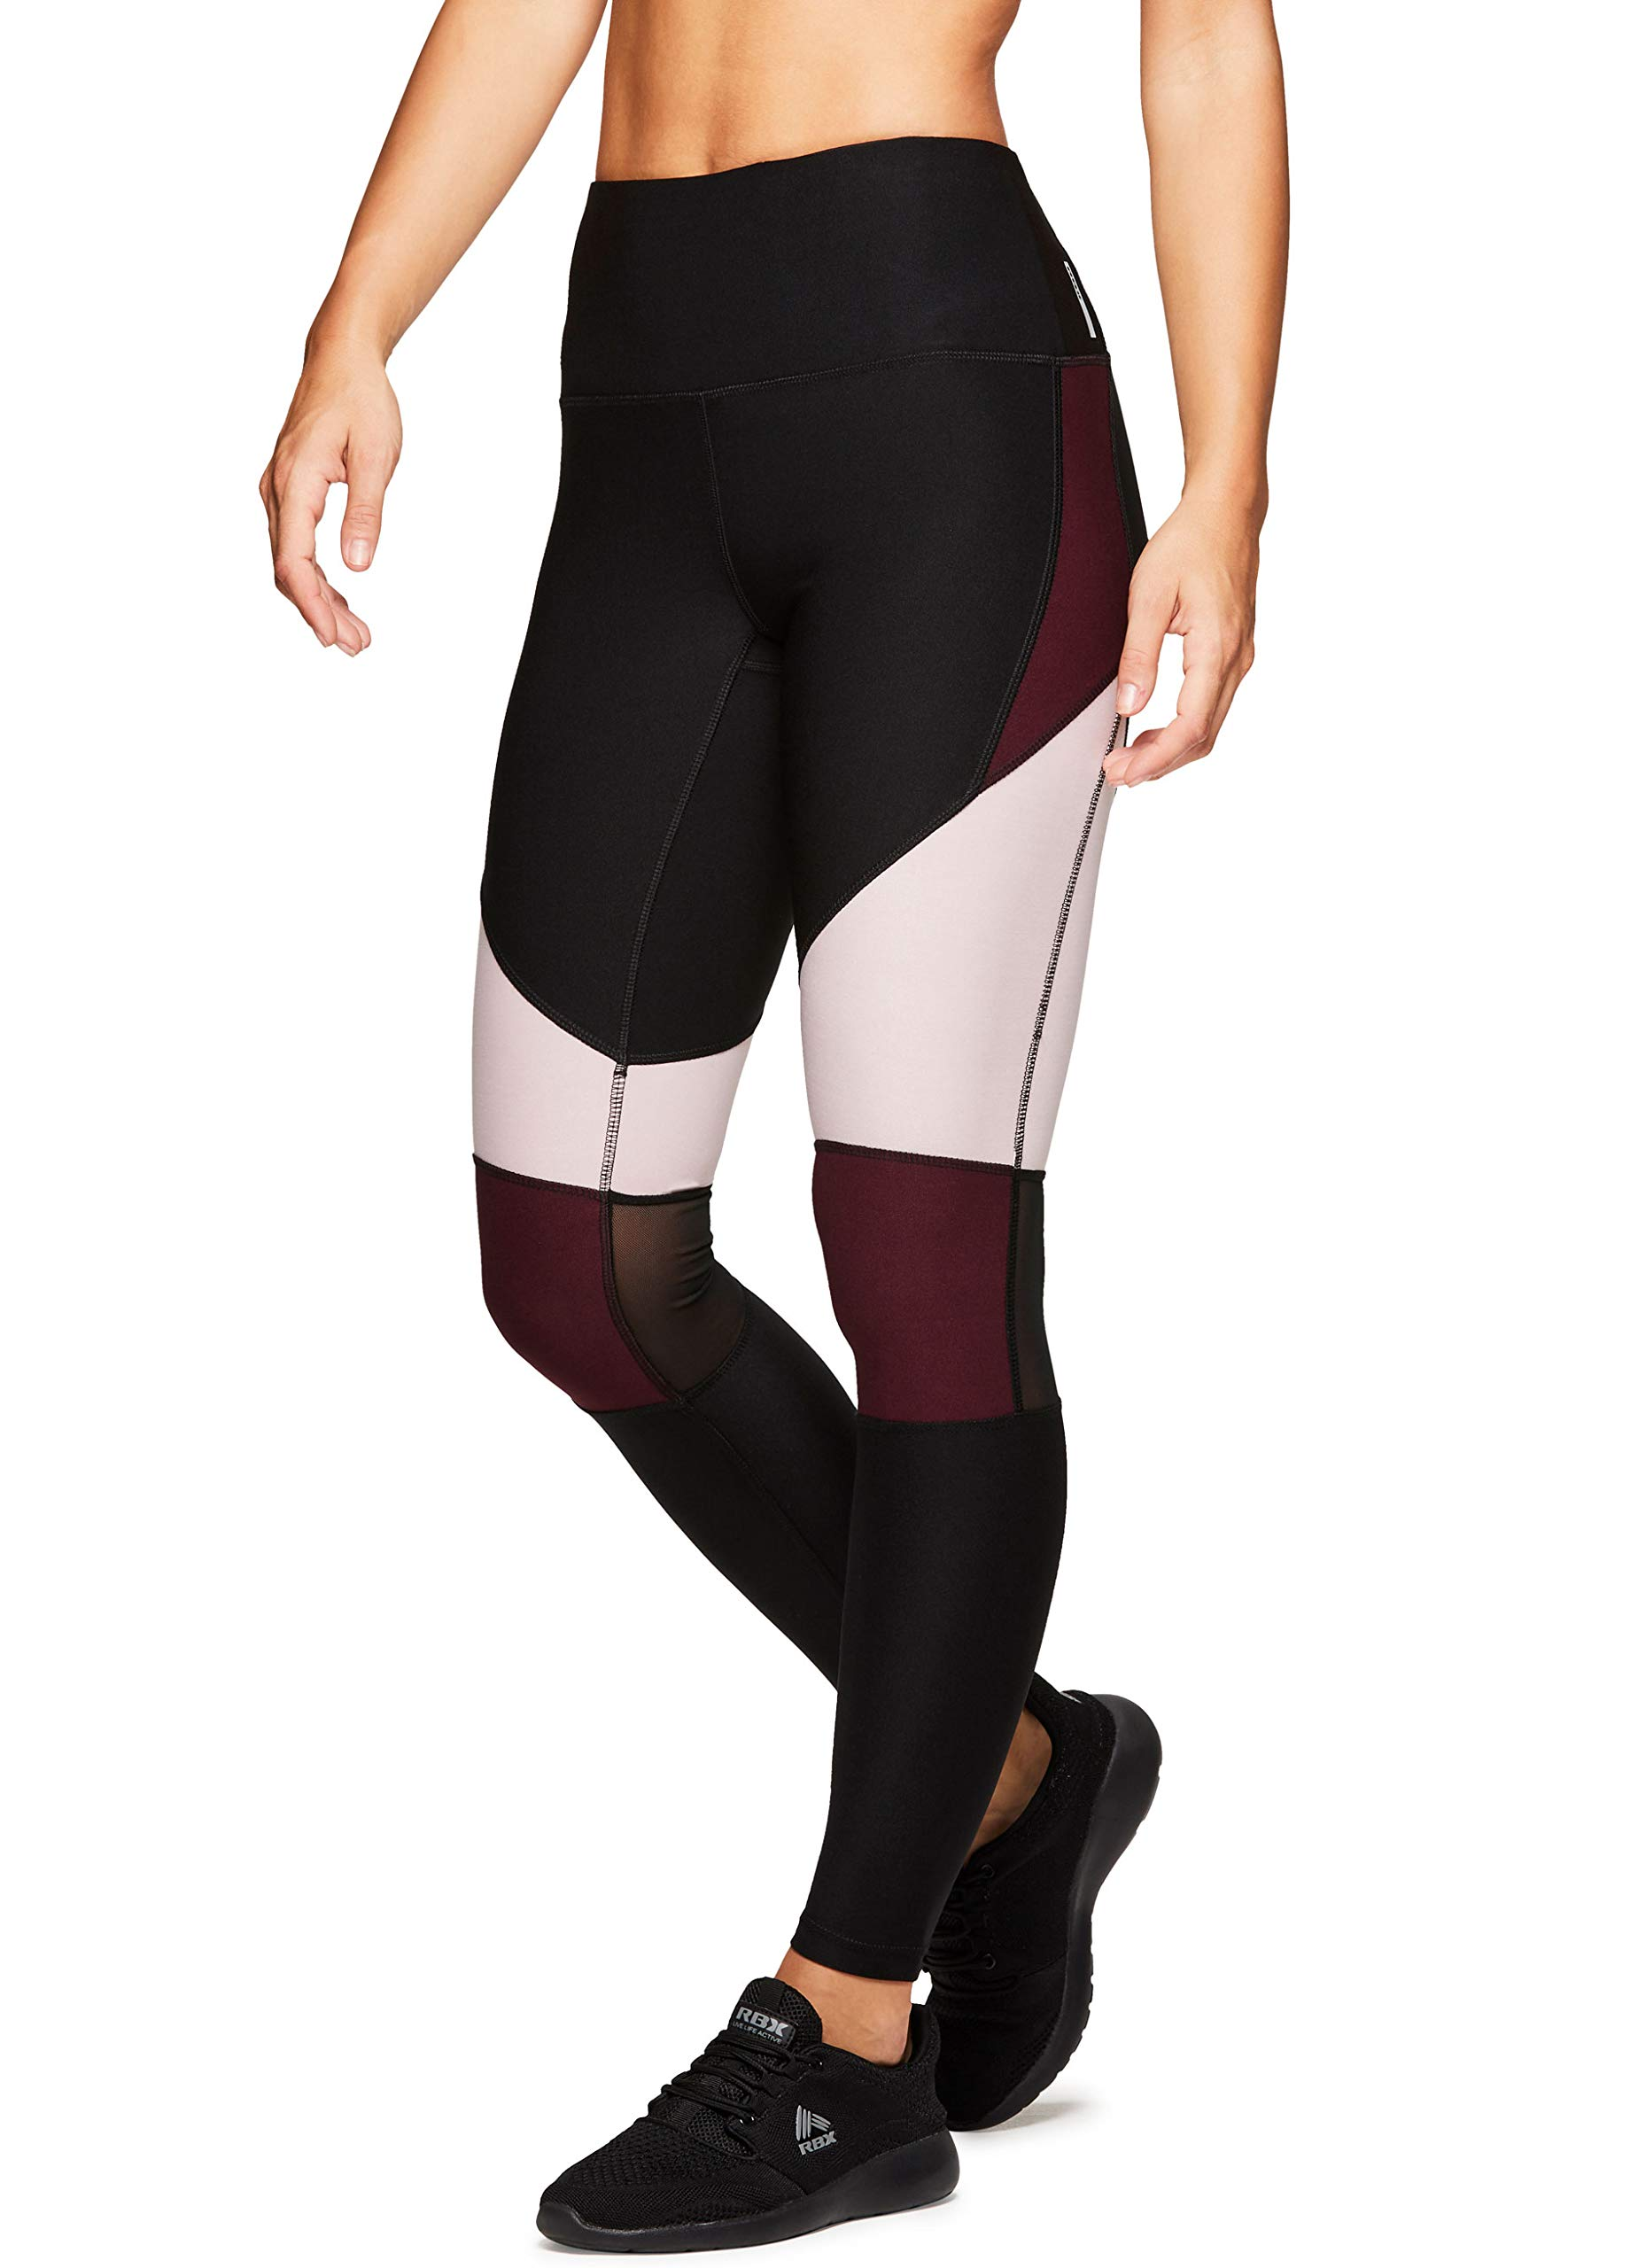 RBX Active Women's Mesh Workout Yoga Fashion Leggings